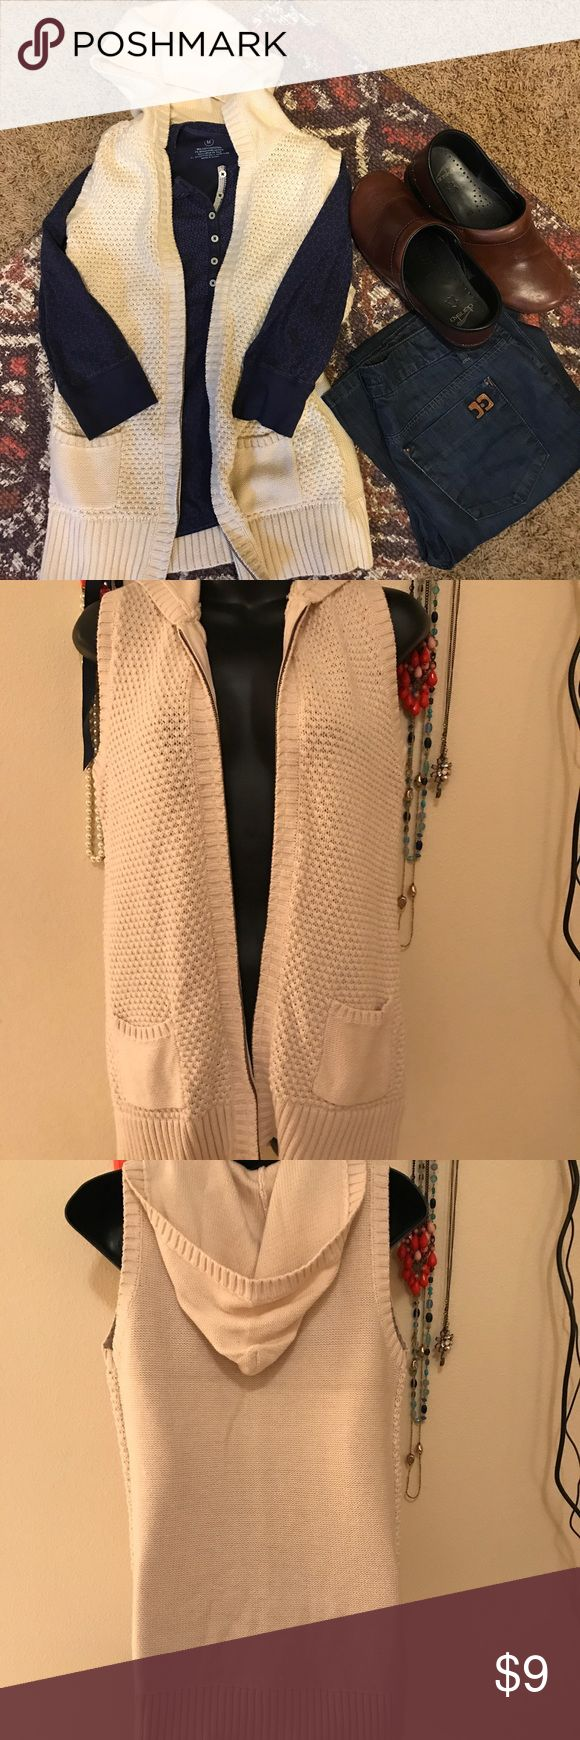 Old Navy Knit Zip-up Vest ADORABLE Old Navy cream zip up hooded vest. Size XXL. 100% cotton. I can't find any signs of wear so this is in excellent condition!! Perfect for the upcoming chilly fall weather. From pet free/smoke free home!! Please let me know if you have any questions!!! 💜💜💜 Old Navy Jackets & Coats Vests